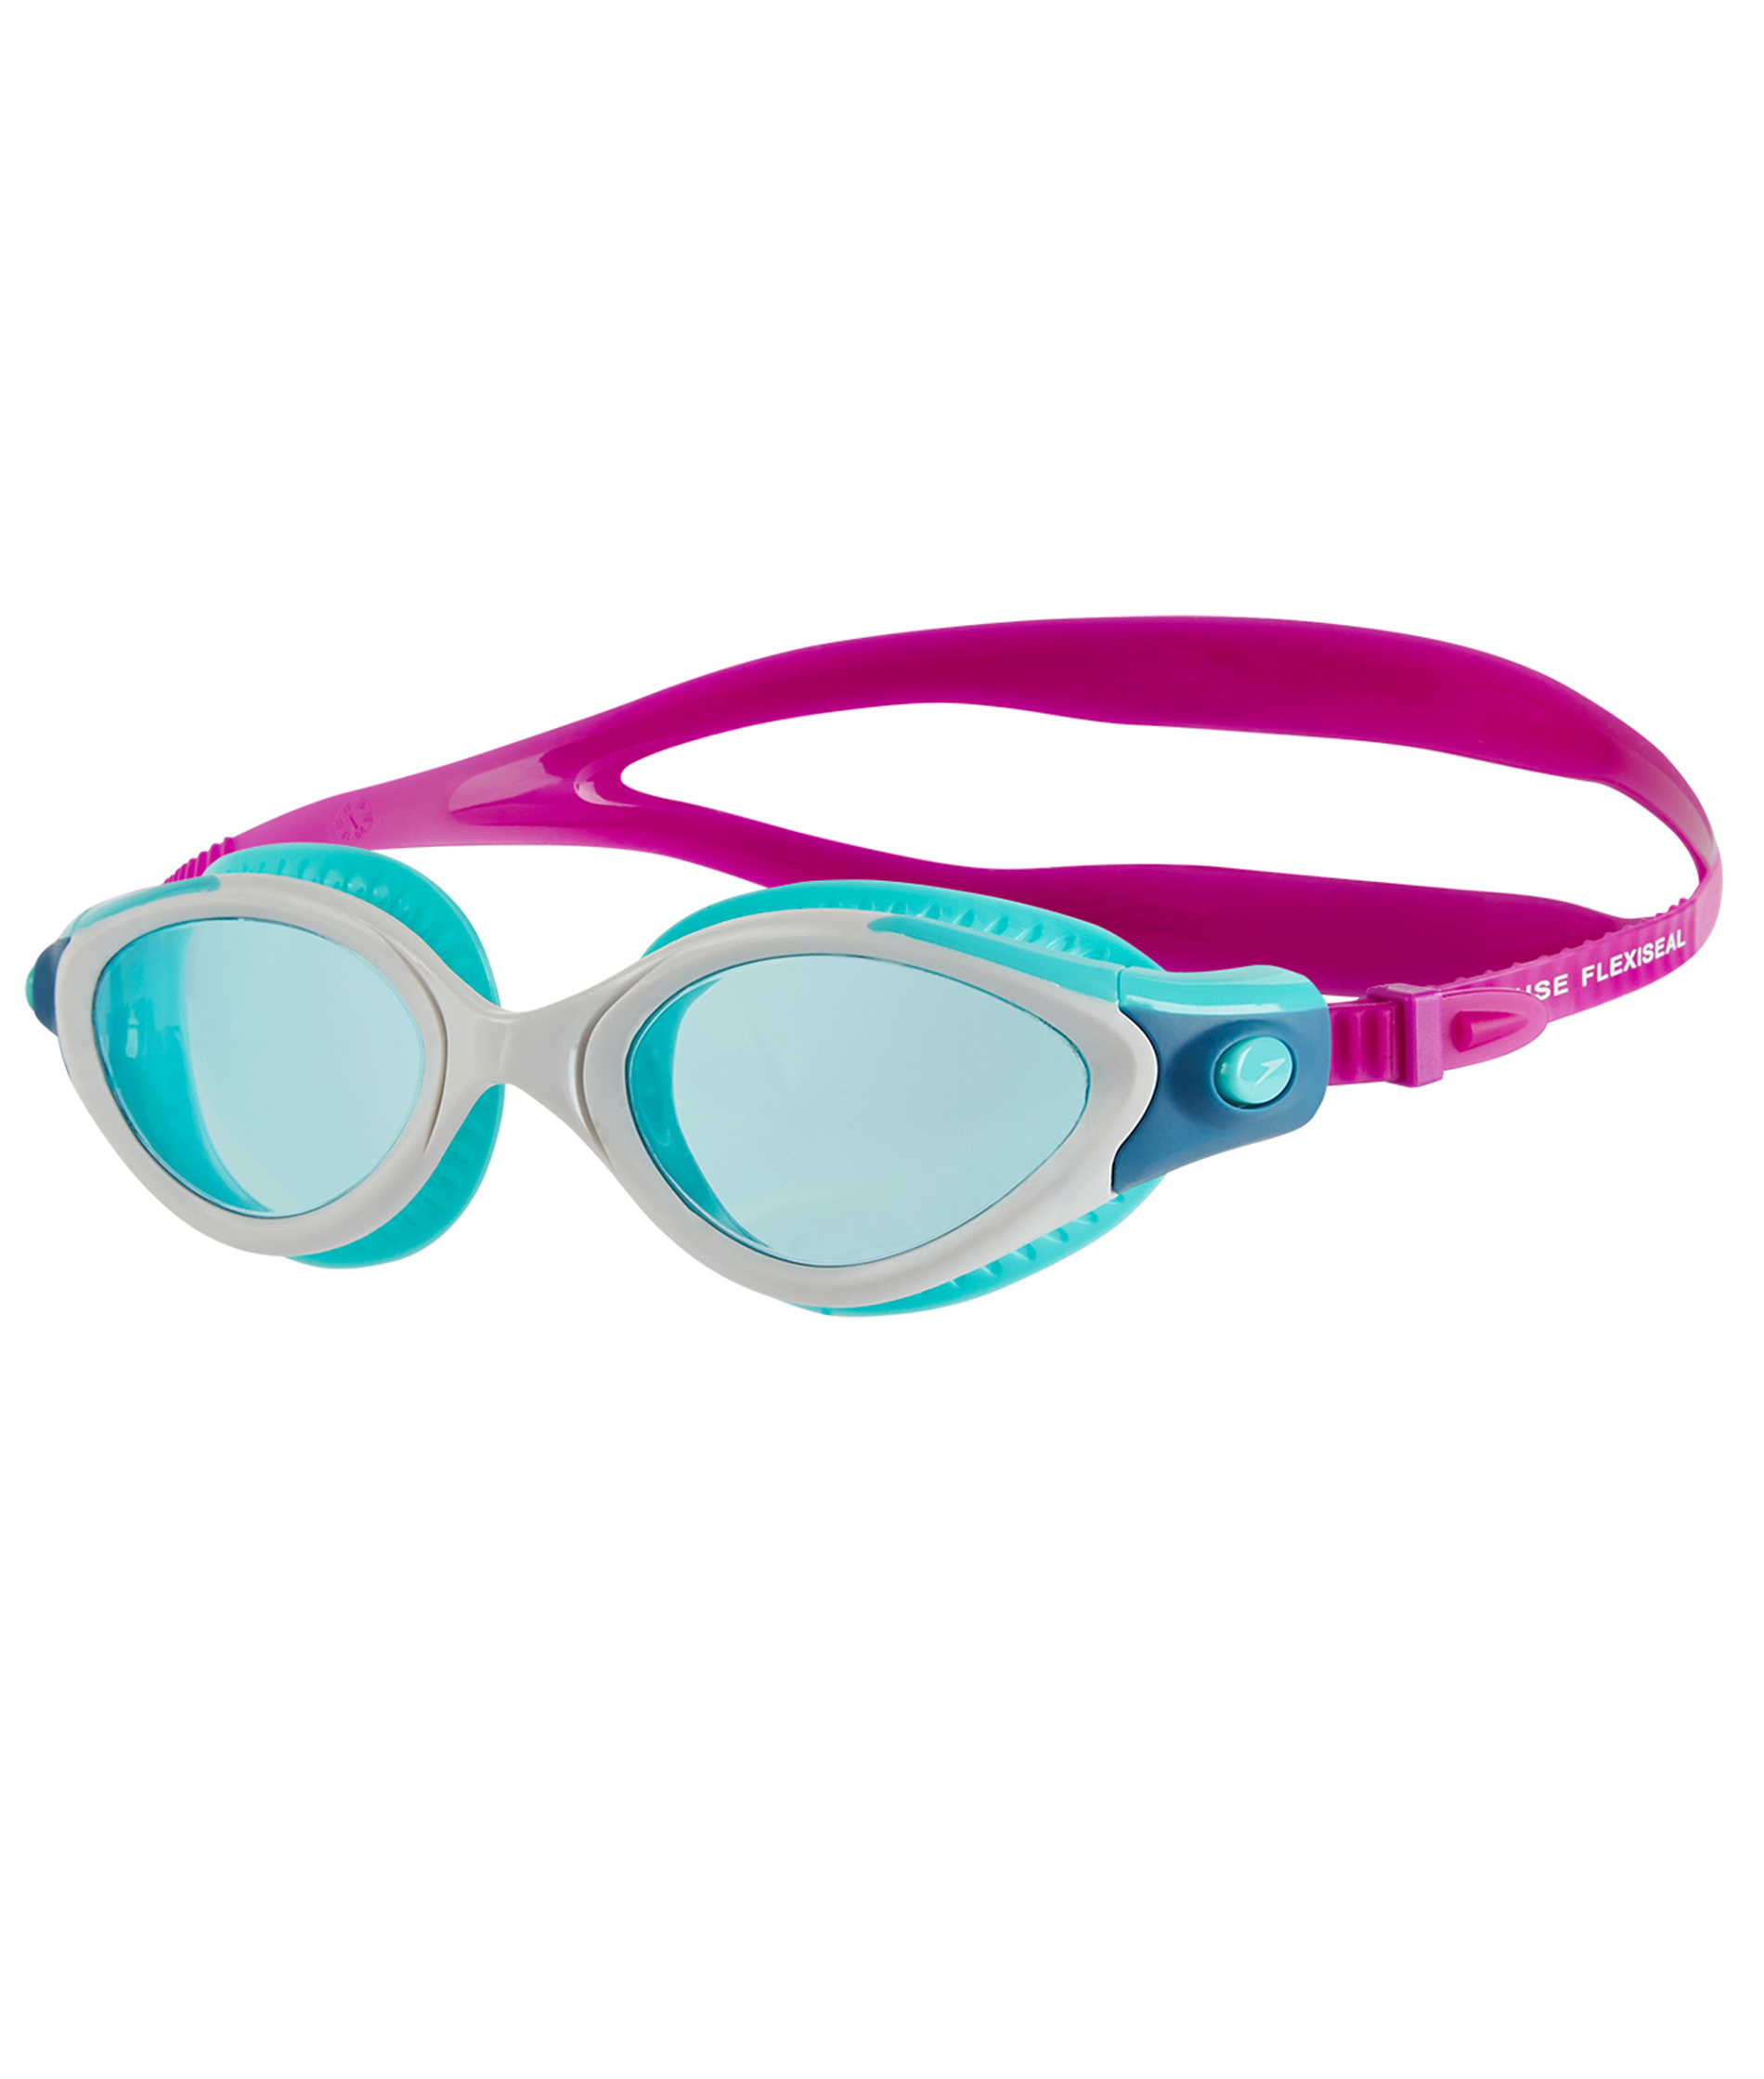 Speedo Futura Biofuse Flexiseal Female Goggle - Purple/Blue